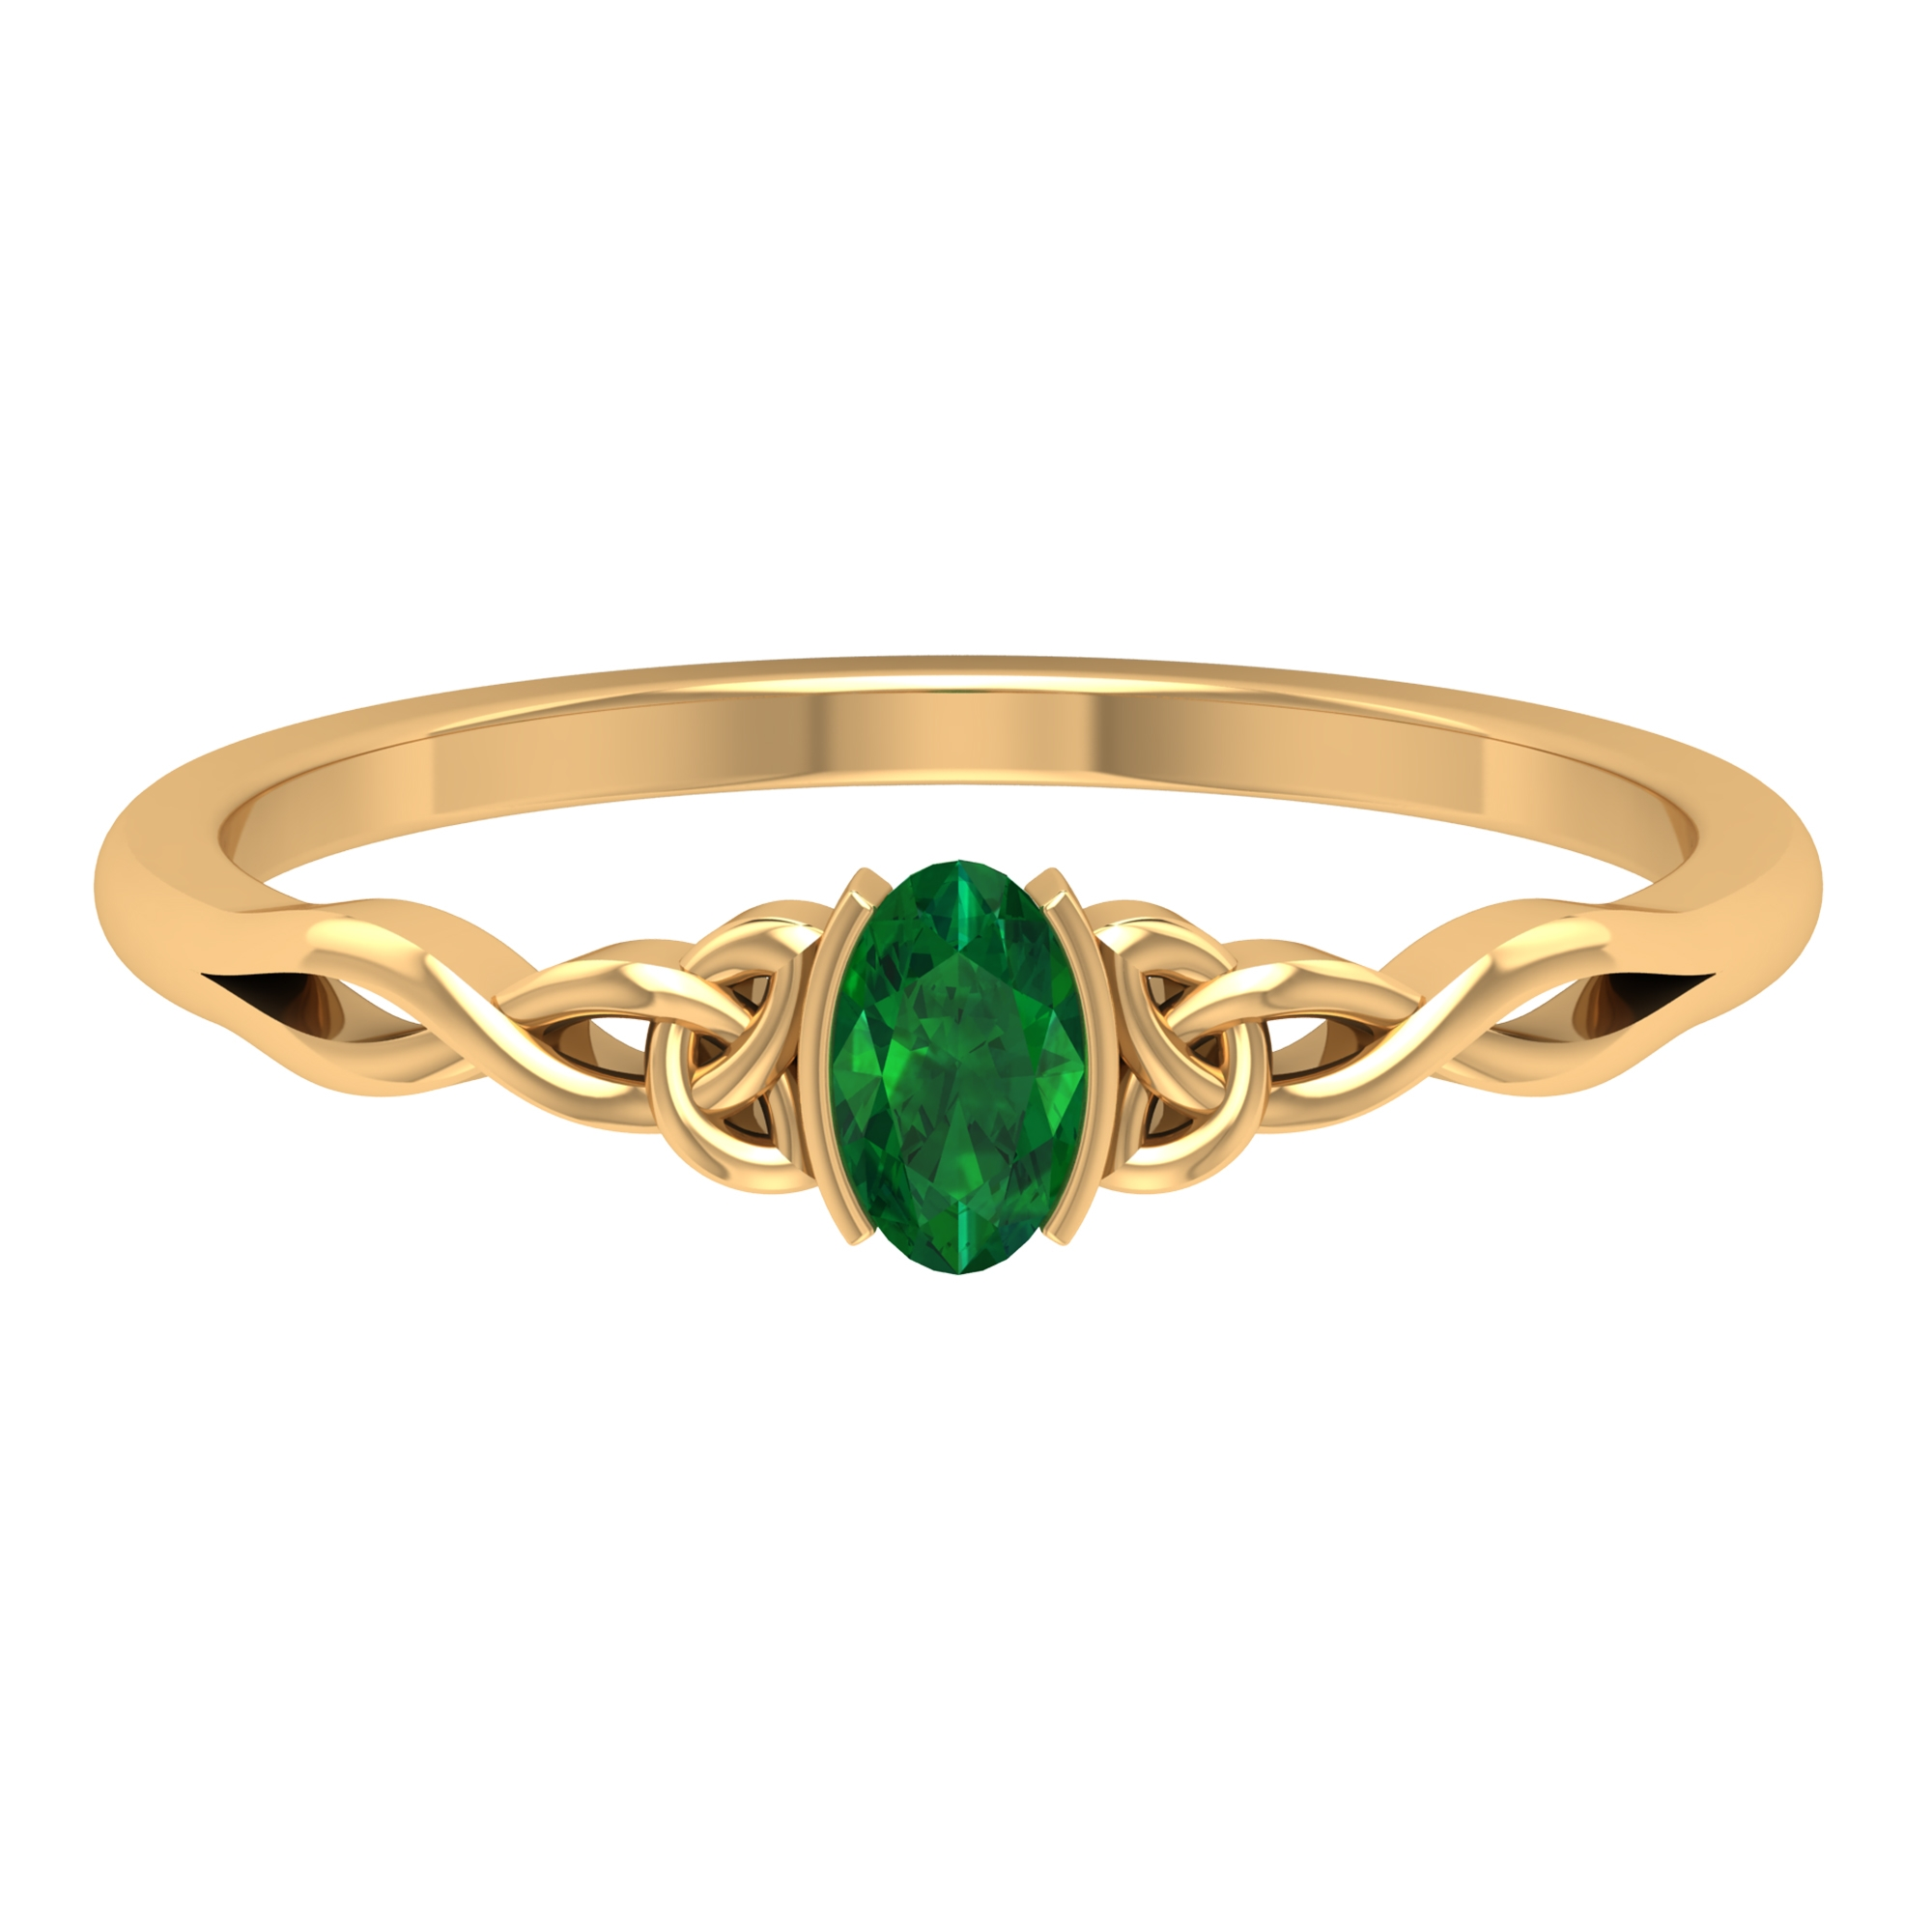 3X5 MM Oval Cut Solitaire Emerald Celtic Ring in Half Bezel Setting